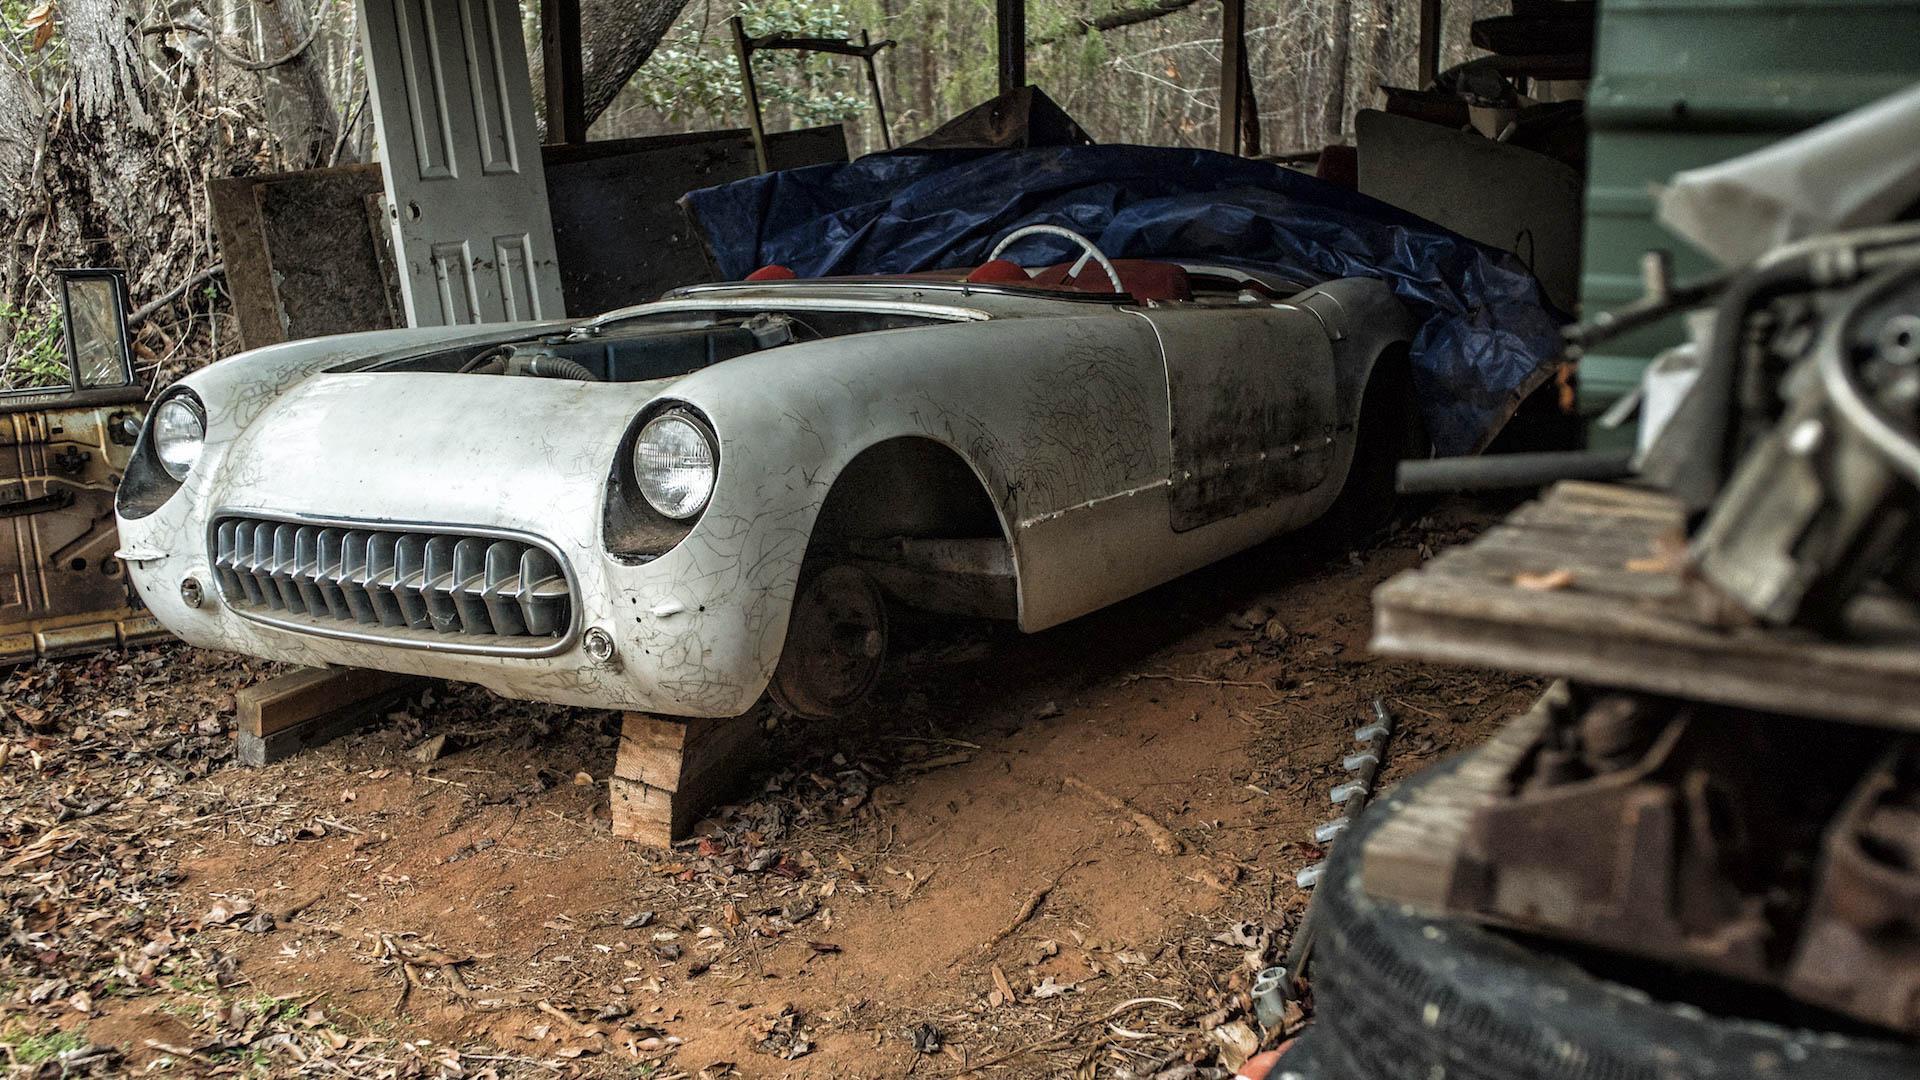 One of 3640 Corvettes built in '54, this survivor watches the seasons pass from its long-term parking spot a stone's throw from bustling I-85. But the owner won't sell.